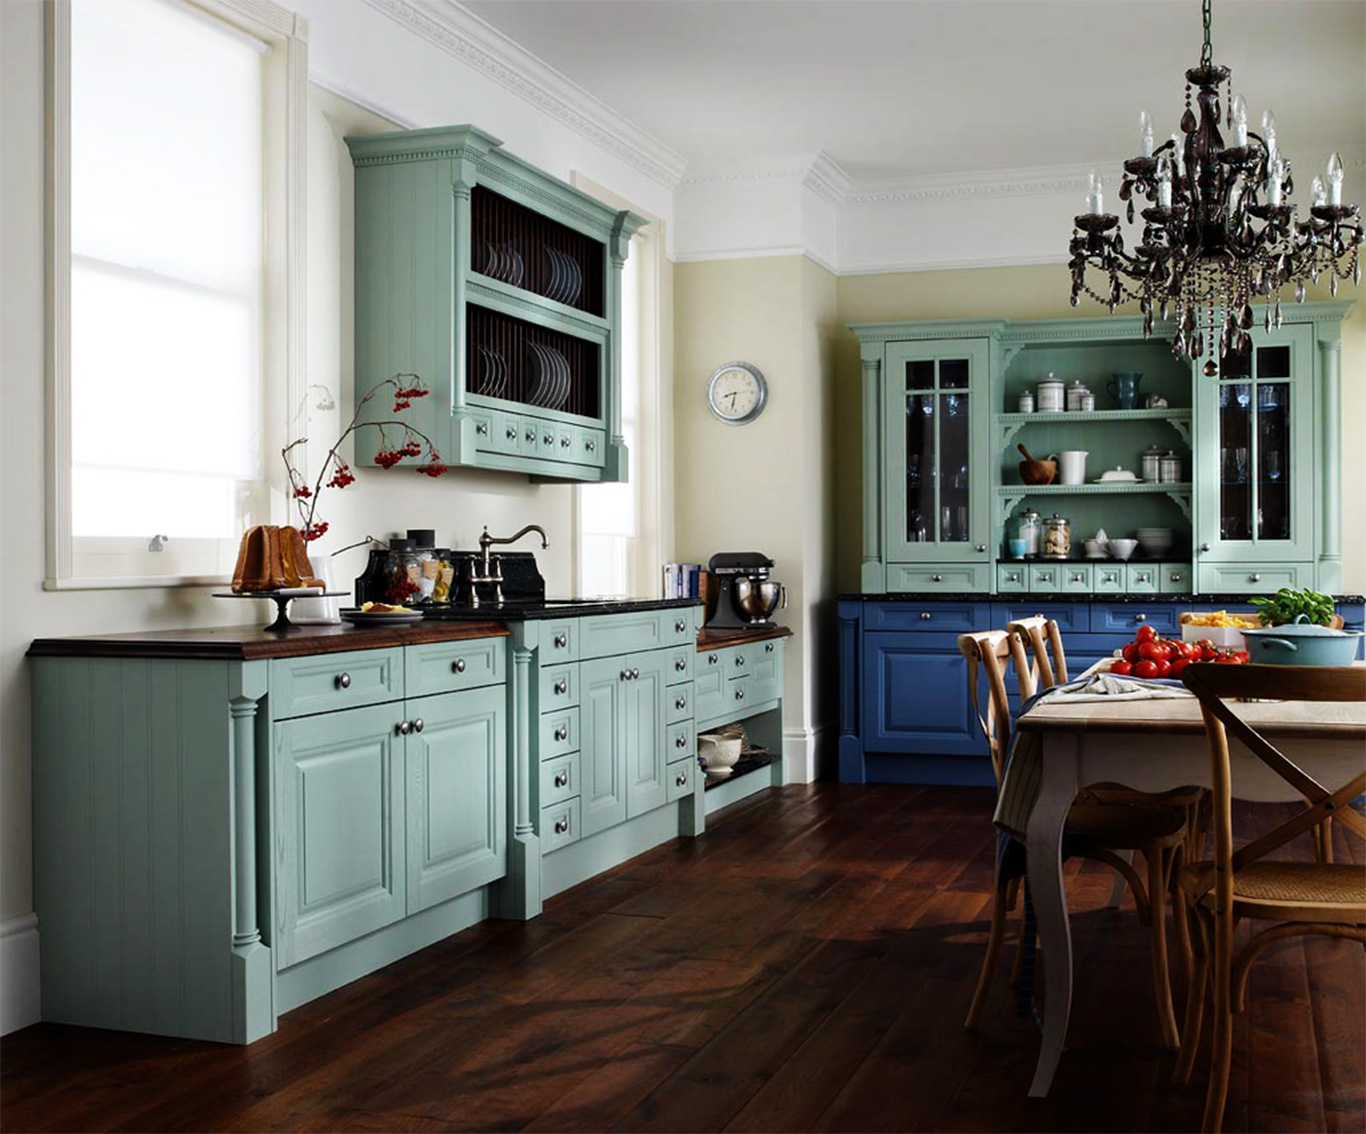 kitchen cabinet colors and ideas photo - 1